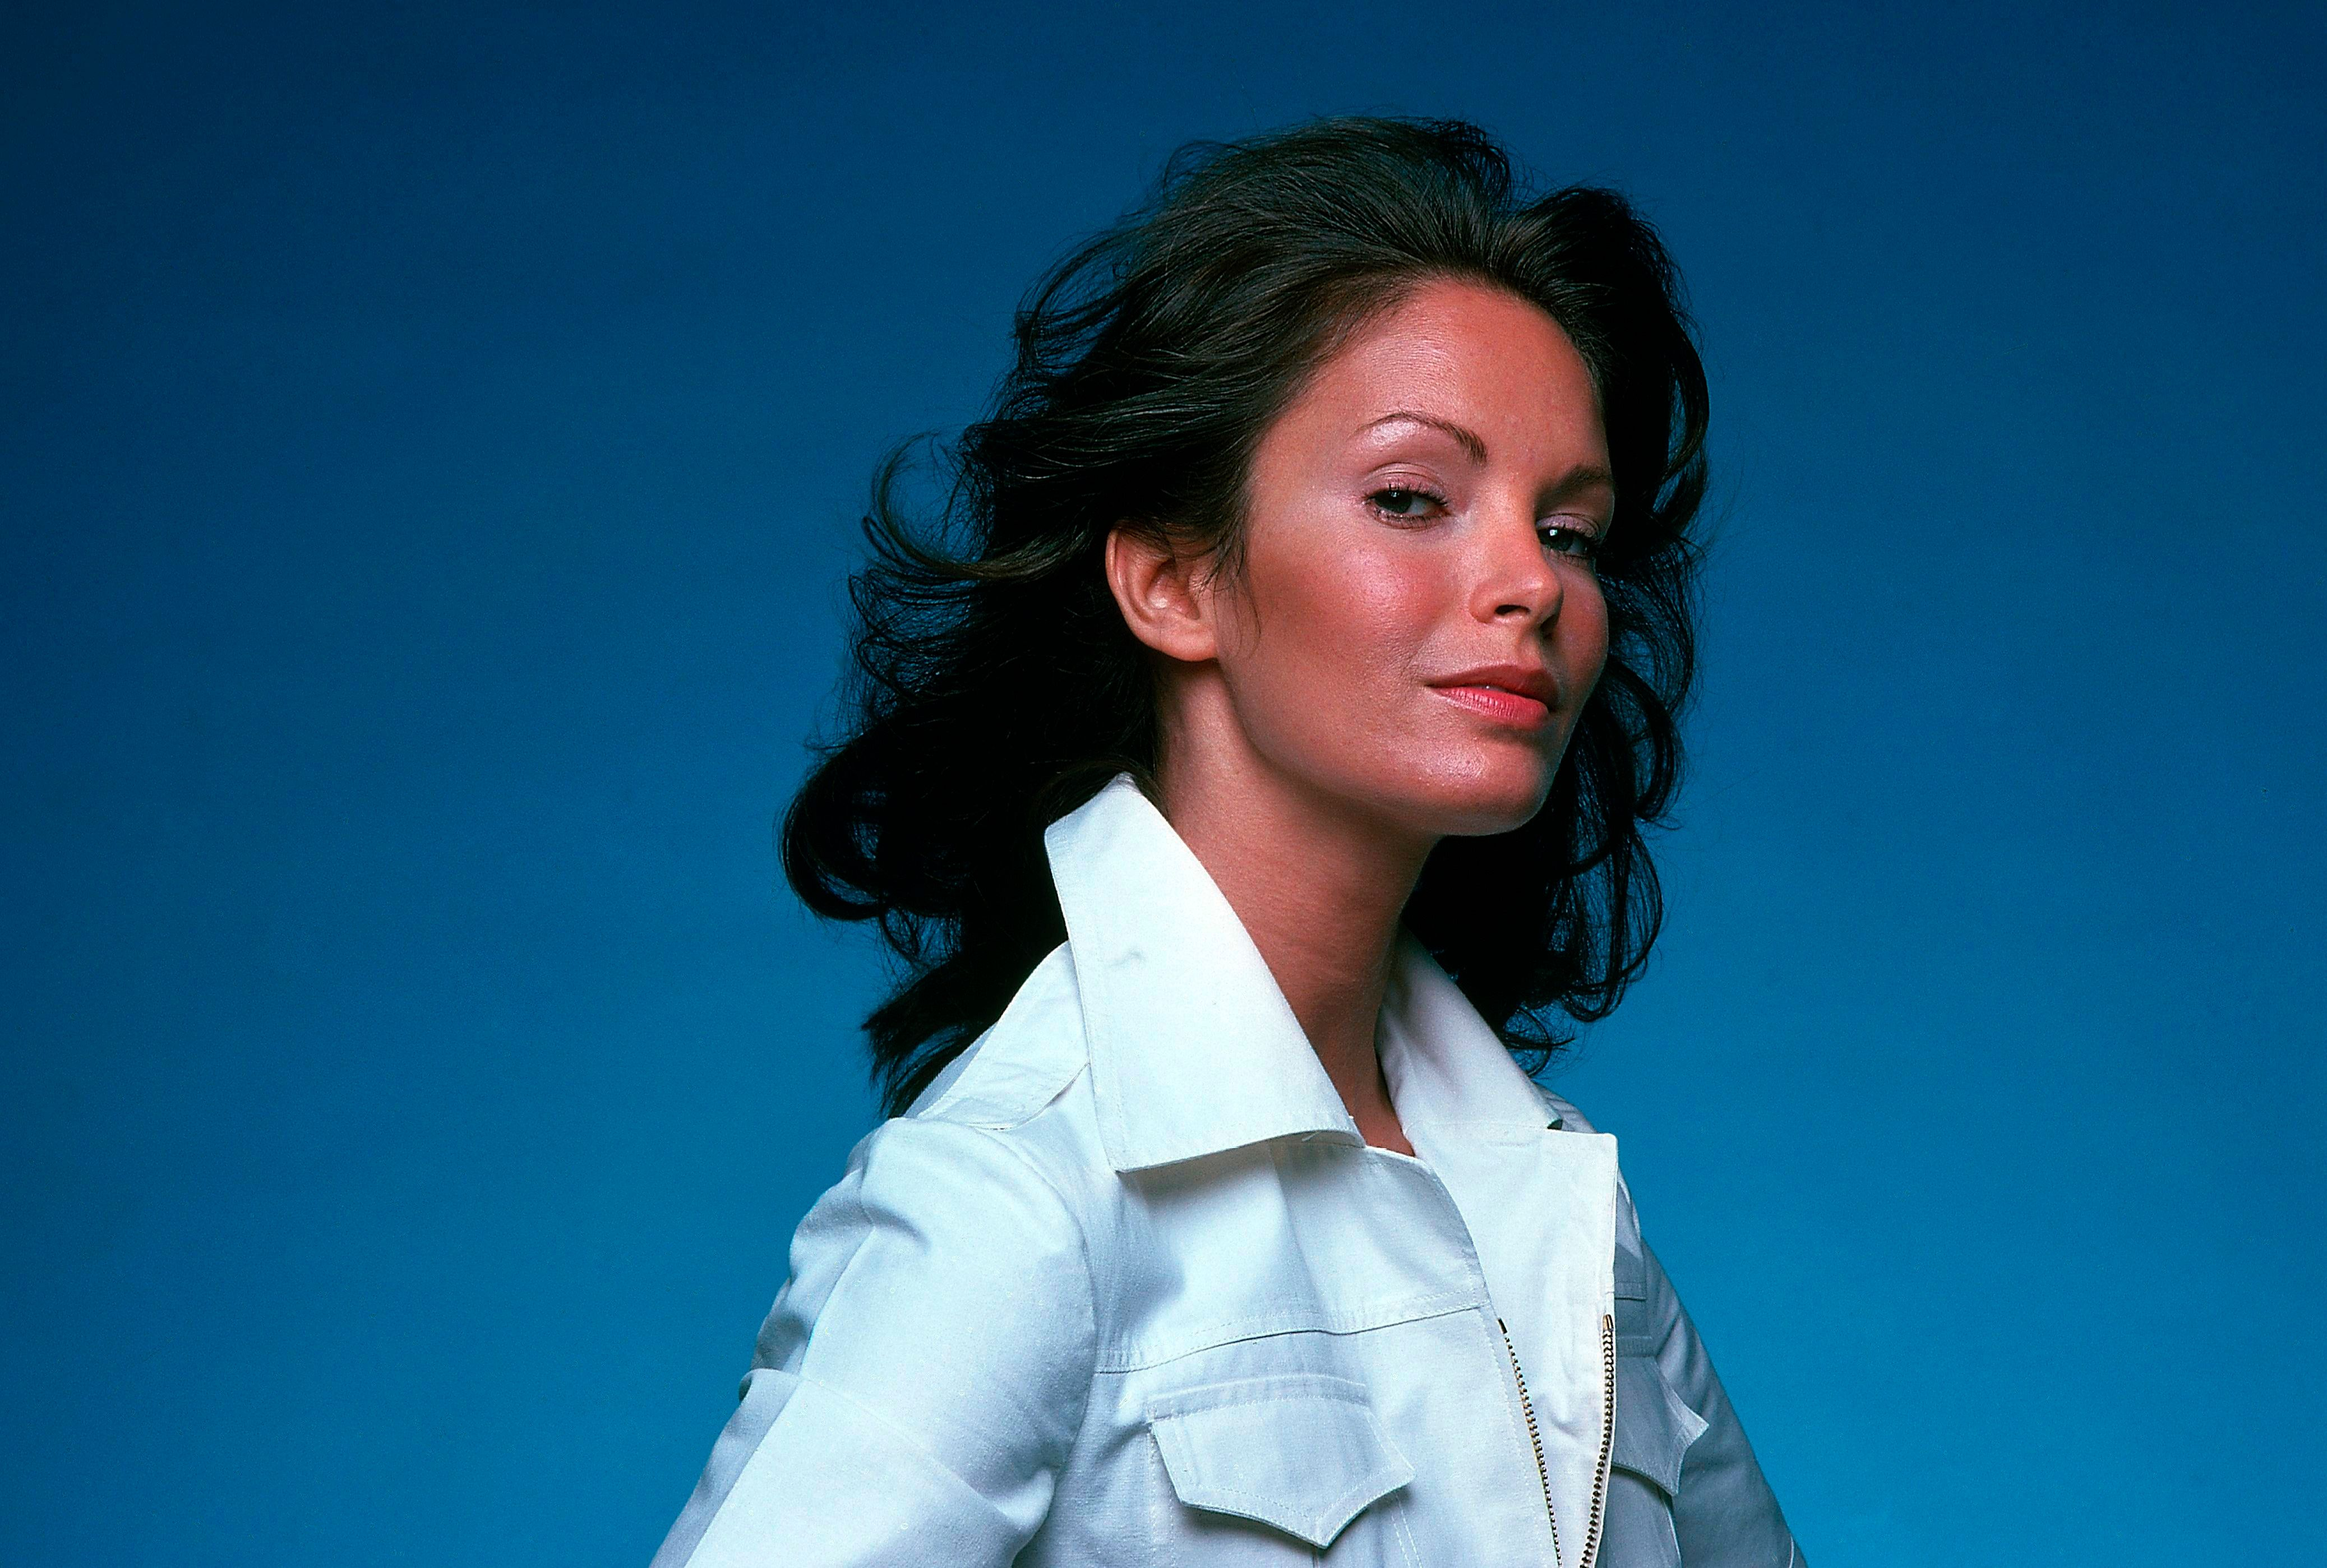 UNITED STATES - JUNE 15:  CHARLIE'S ANGELS - AD Gallery - 6/15/76 Jaclyn Smith  (Photo by ABC Photo Archives/ABC via Getty Images)